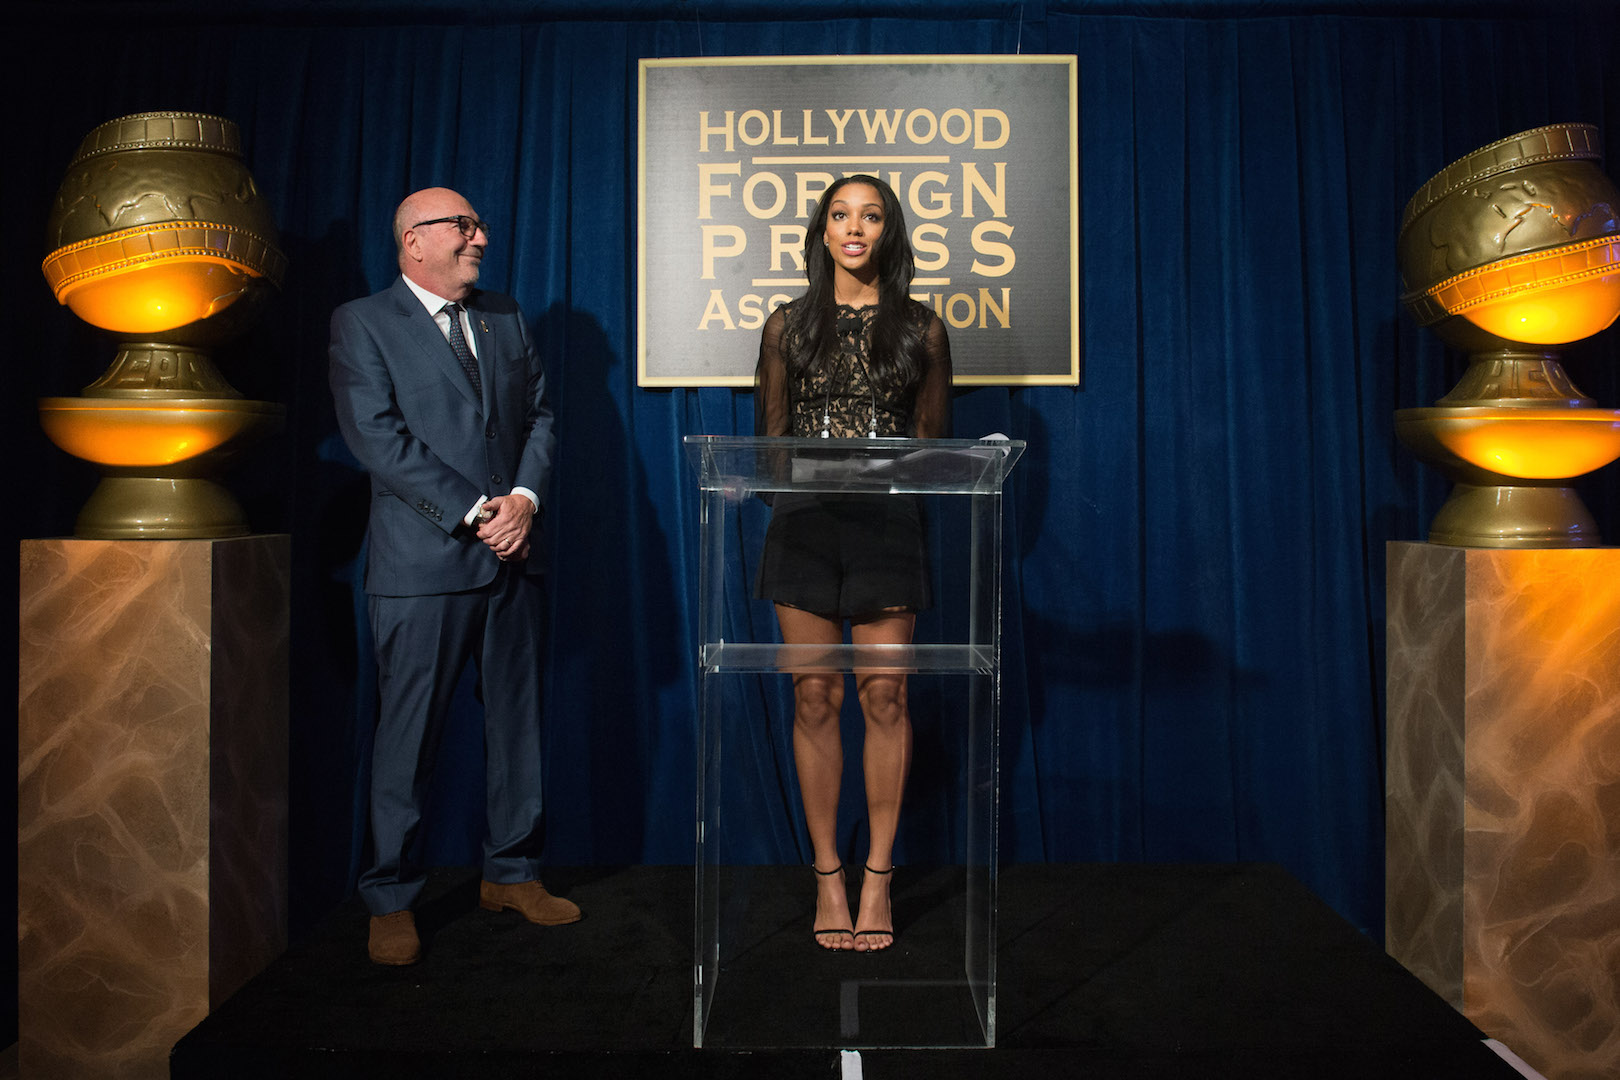 The Hollywood Foreign Press Association has selected Corinne Foxx as Miss Golden Globe 2016 for the 73rd Annual Golden Globe Awards set to air live on NBC on January 10, 2016.